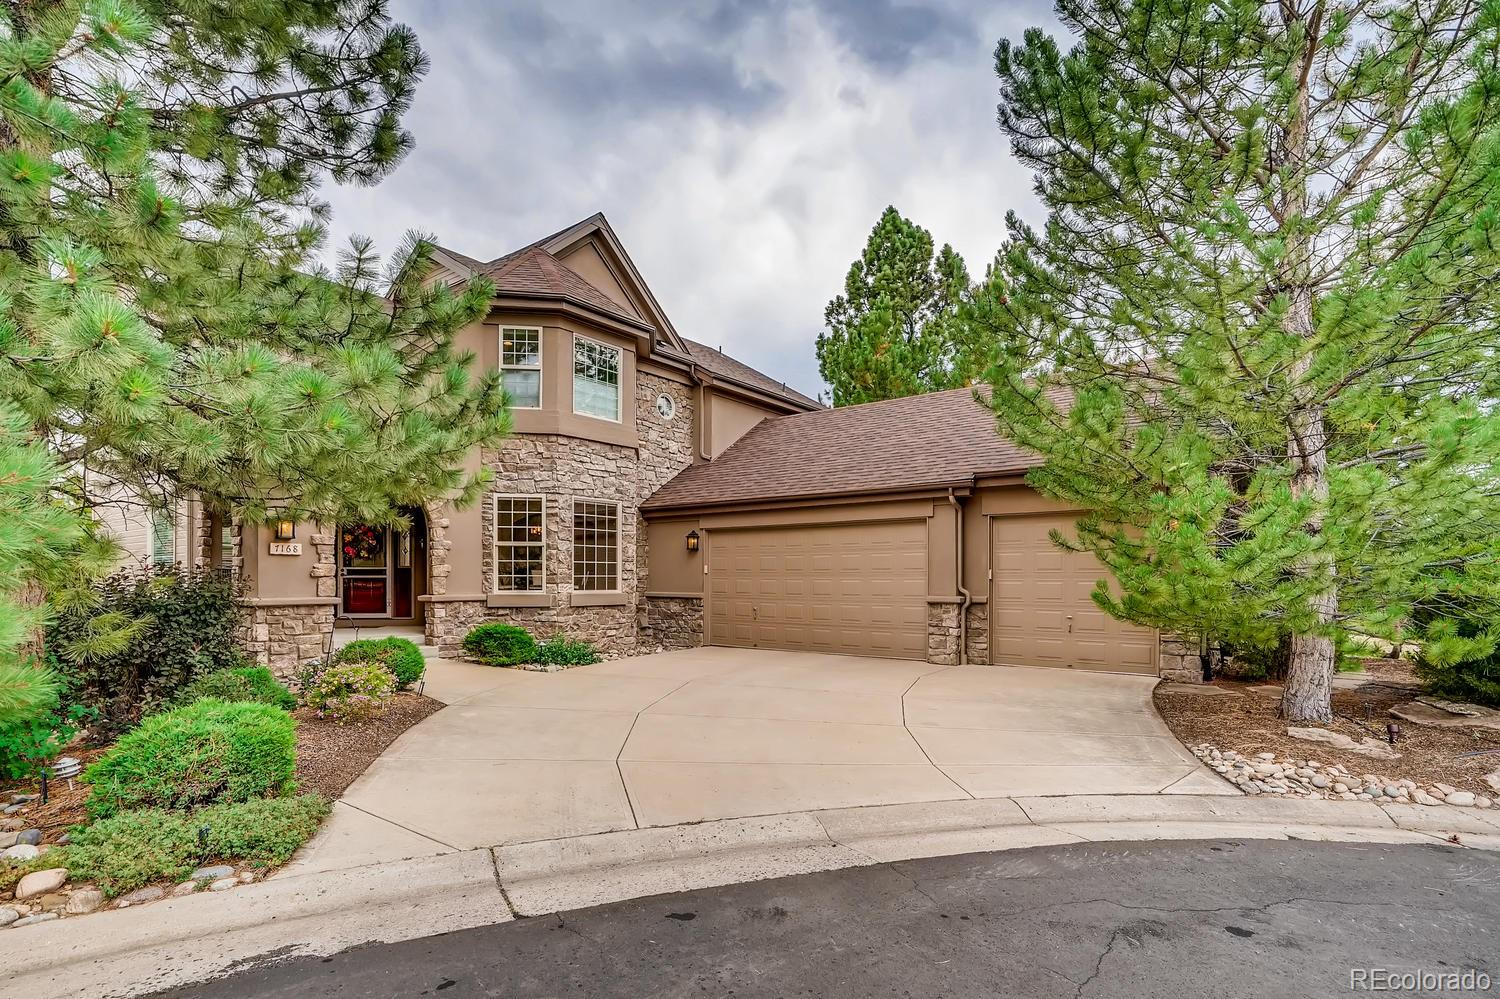 This stunning 2 story in Castle Pines sits on a quiet cul-de-sac and features 4 beds (3 up / 1 bsmt), 3.5 baths, great room, gourmet kitchen, main floor study, finished walkout basement w/wetbar and 3 car attached garage.  Meticulously maintained – pride of ownership shines throughout.  This home could grace the cover of a magazine.  Gorgeous finishes and upgrades throughout.  The kitchen is a cook's dream and is open to the great room – perfect for entertaining. Rich, vibrant colors and the many windows allowing the natural light to cascade in combine to make this home welcoming and cheerful.  Comfortable elegance. Located on a large lot - relax on the deck or patio in your own private oasis.  The finished basement is perfect for guests or that teen wanting their own space.  This home lives large!  So many special touches throughout - a must see.  New roof (1 yr old in Dec) is class 4 hail resistant.The energy efficient furnace, central air, ceiling fans and 2 gas fireplaces keep this home comfortable all year long. Close to dining, shopping, entertainment and other amenities. Don't miss your opportunity to call this one yours.  Welcome Home!